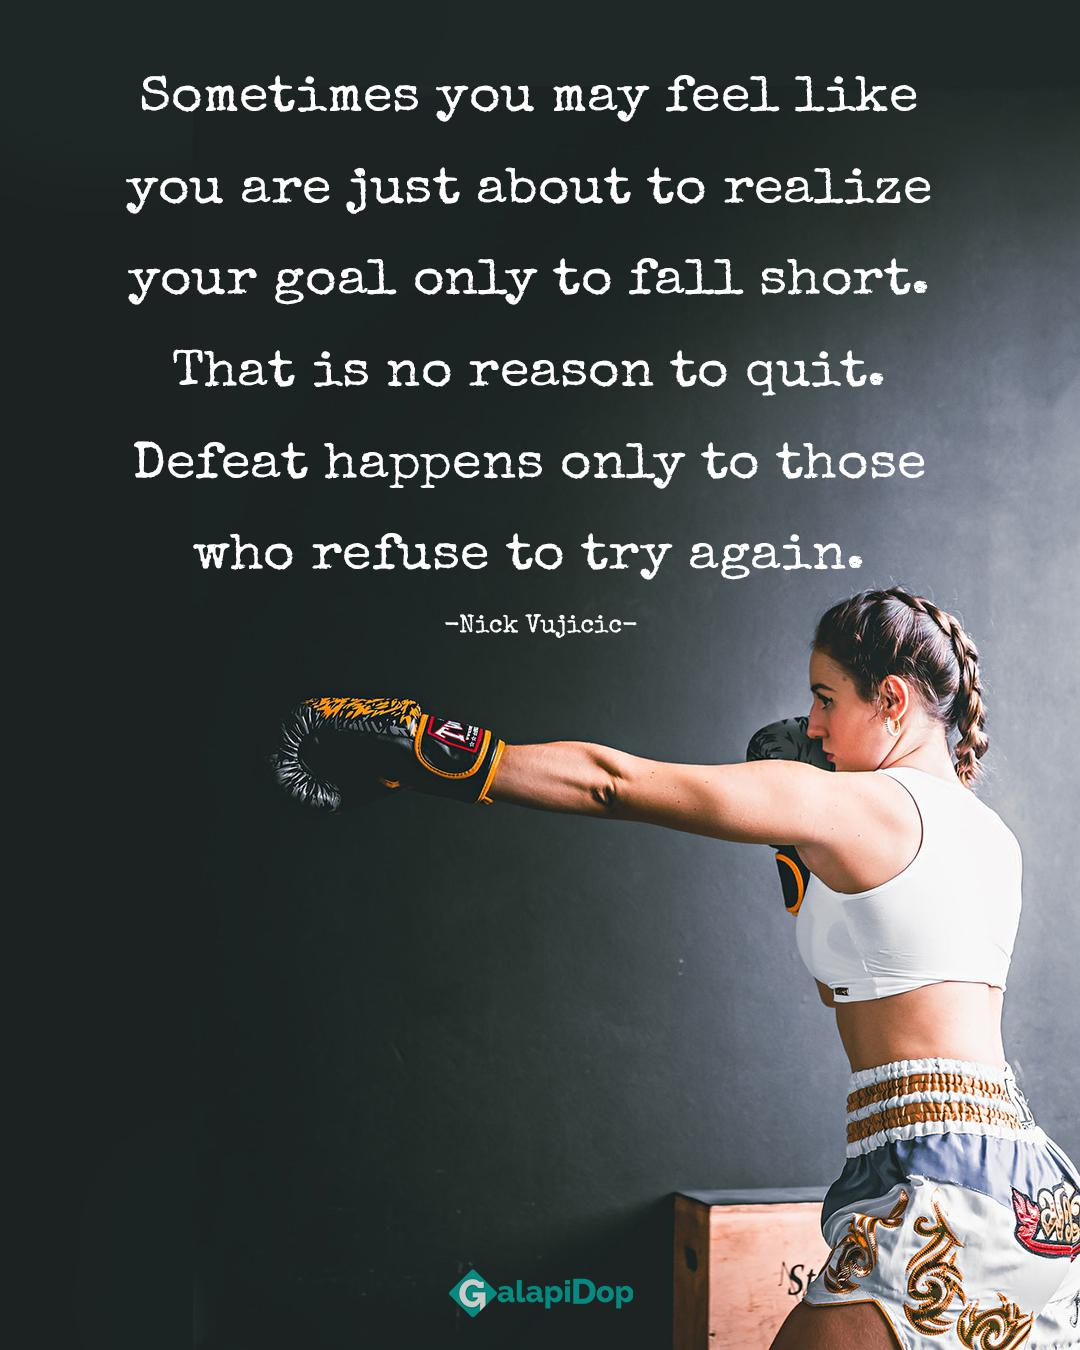 """Sometimes you may feel like you are just about to realize your goal only to fall short. That is no reason to quit. g; """" ' Defeat happens only to th who refuse to try ag , -Nick Vujicic- https://inspirational.ly"""